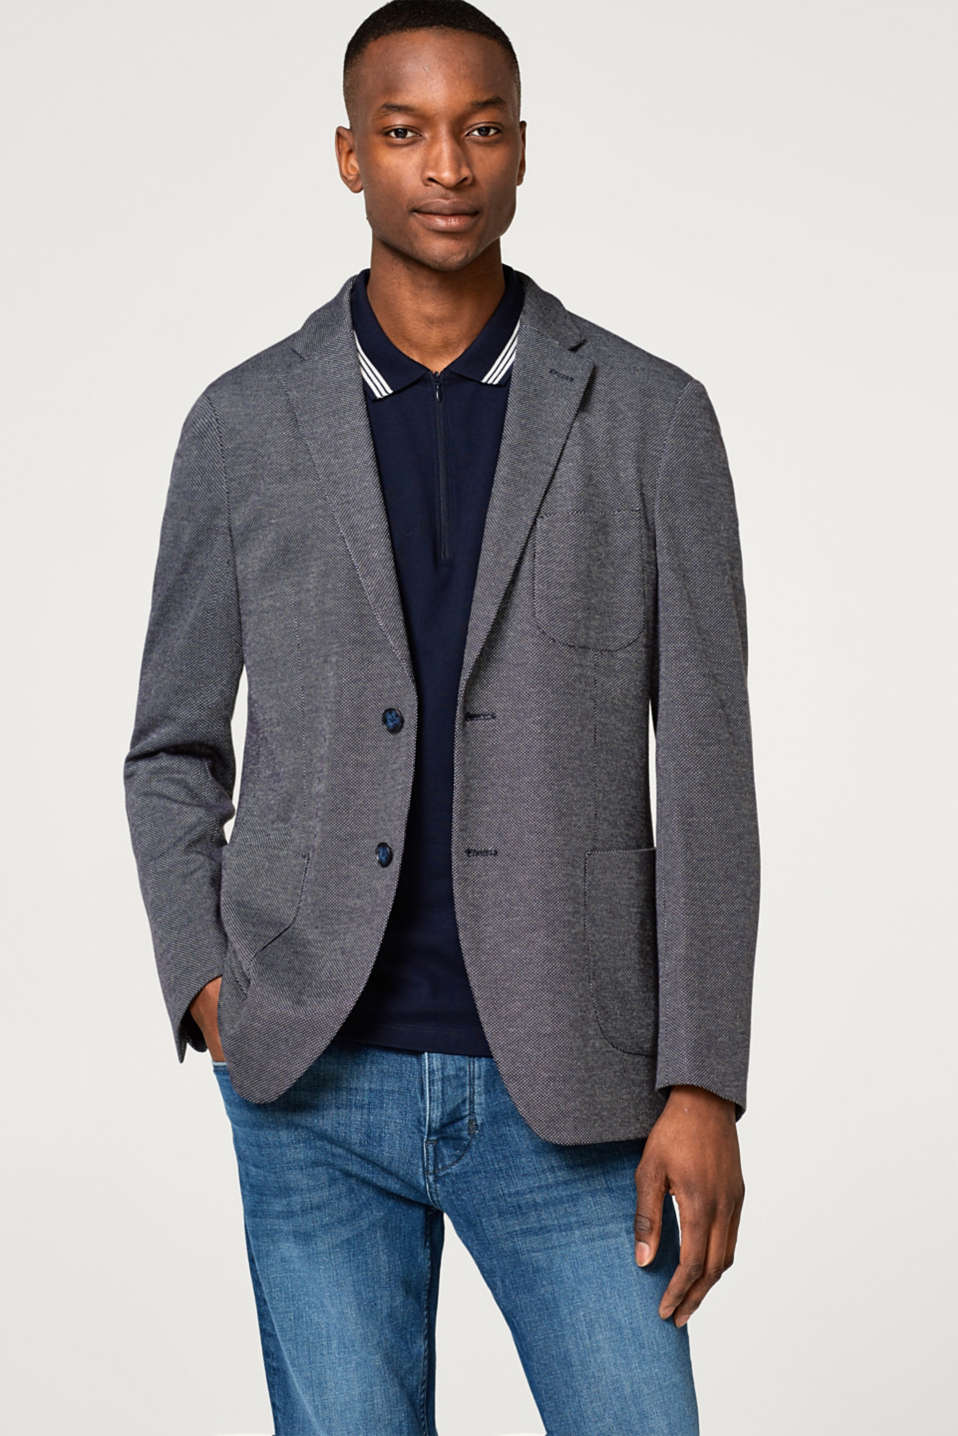 Esprit - Sporty blazer with a two-tone texture